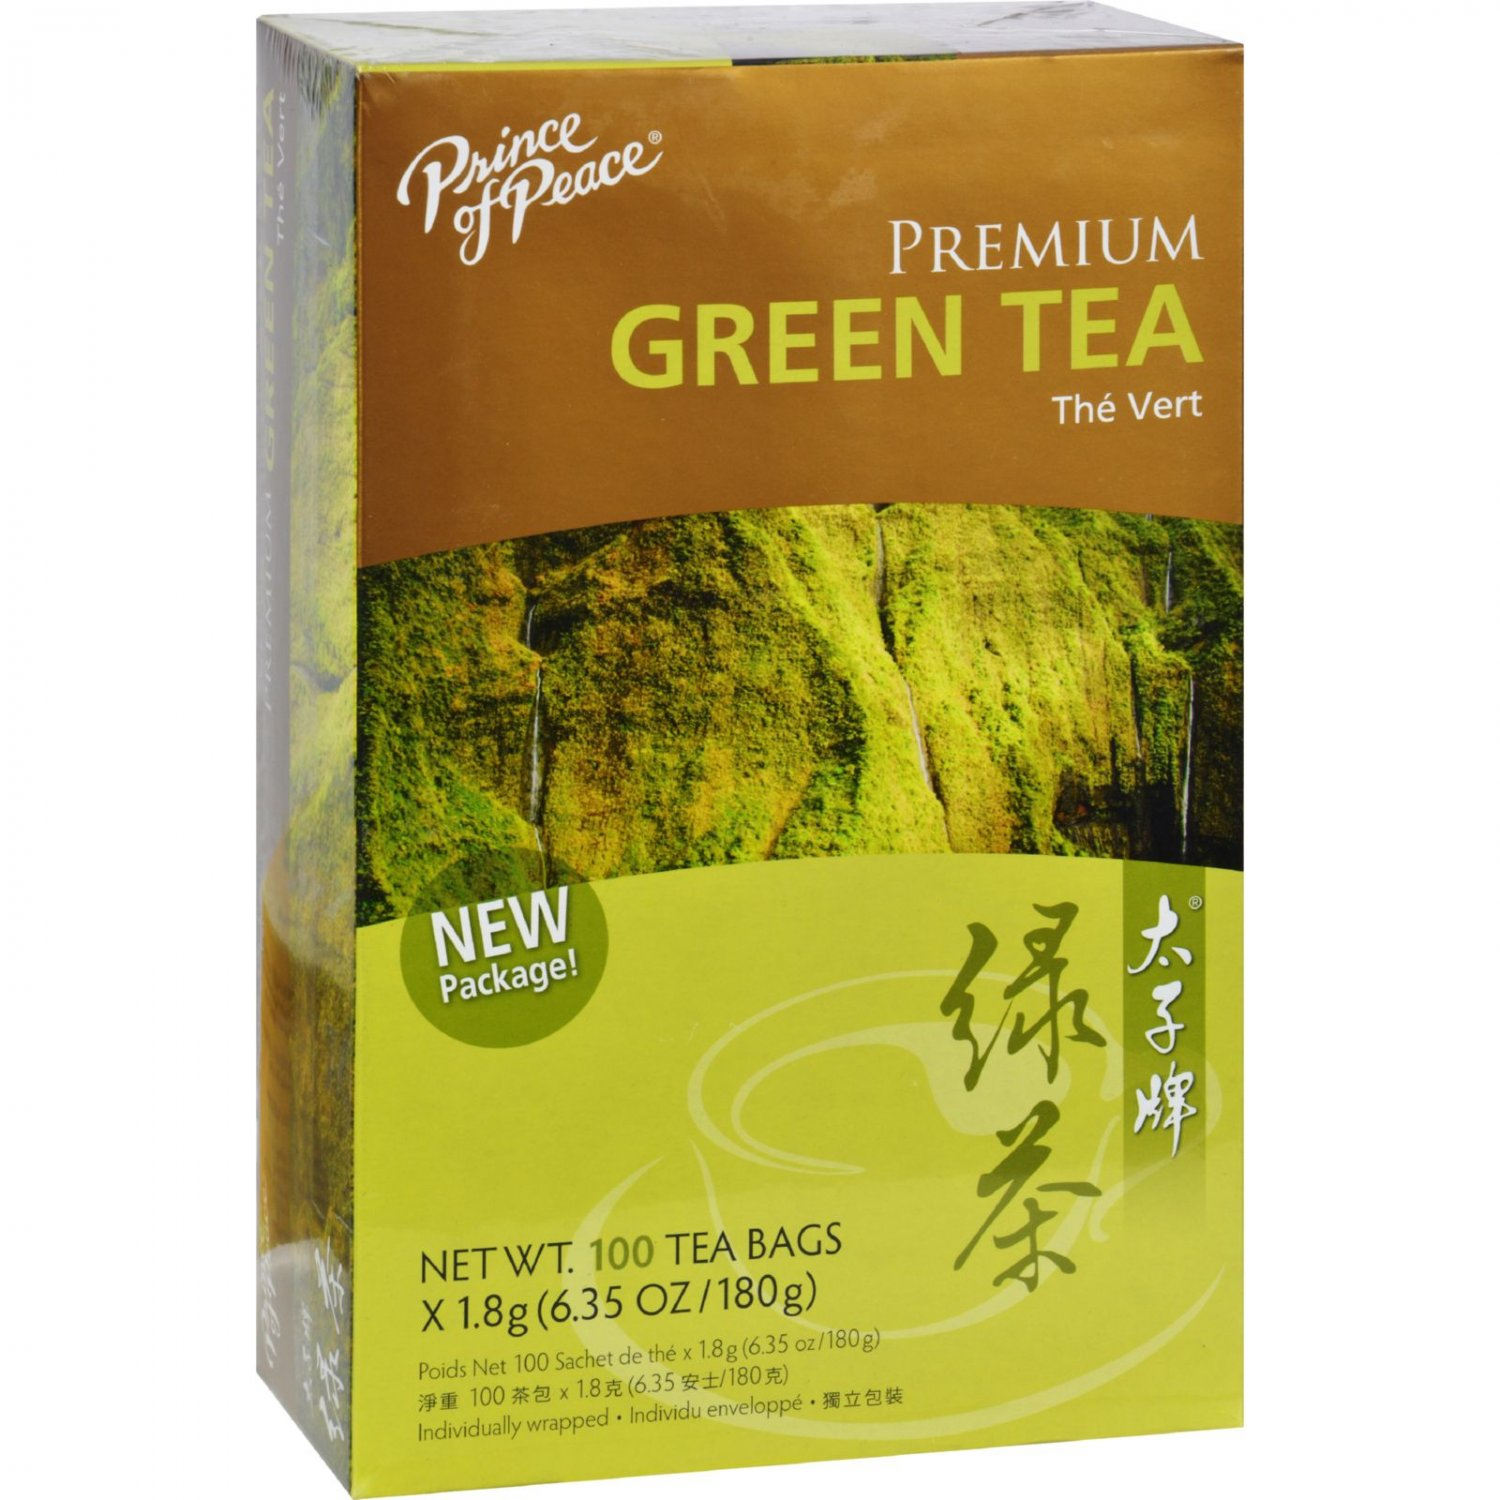 Prince of Peace Premium Green Tea - 100 Tea Bags (Pack of 3)